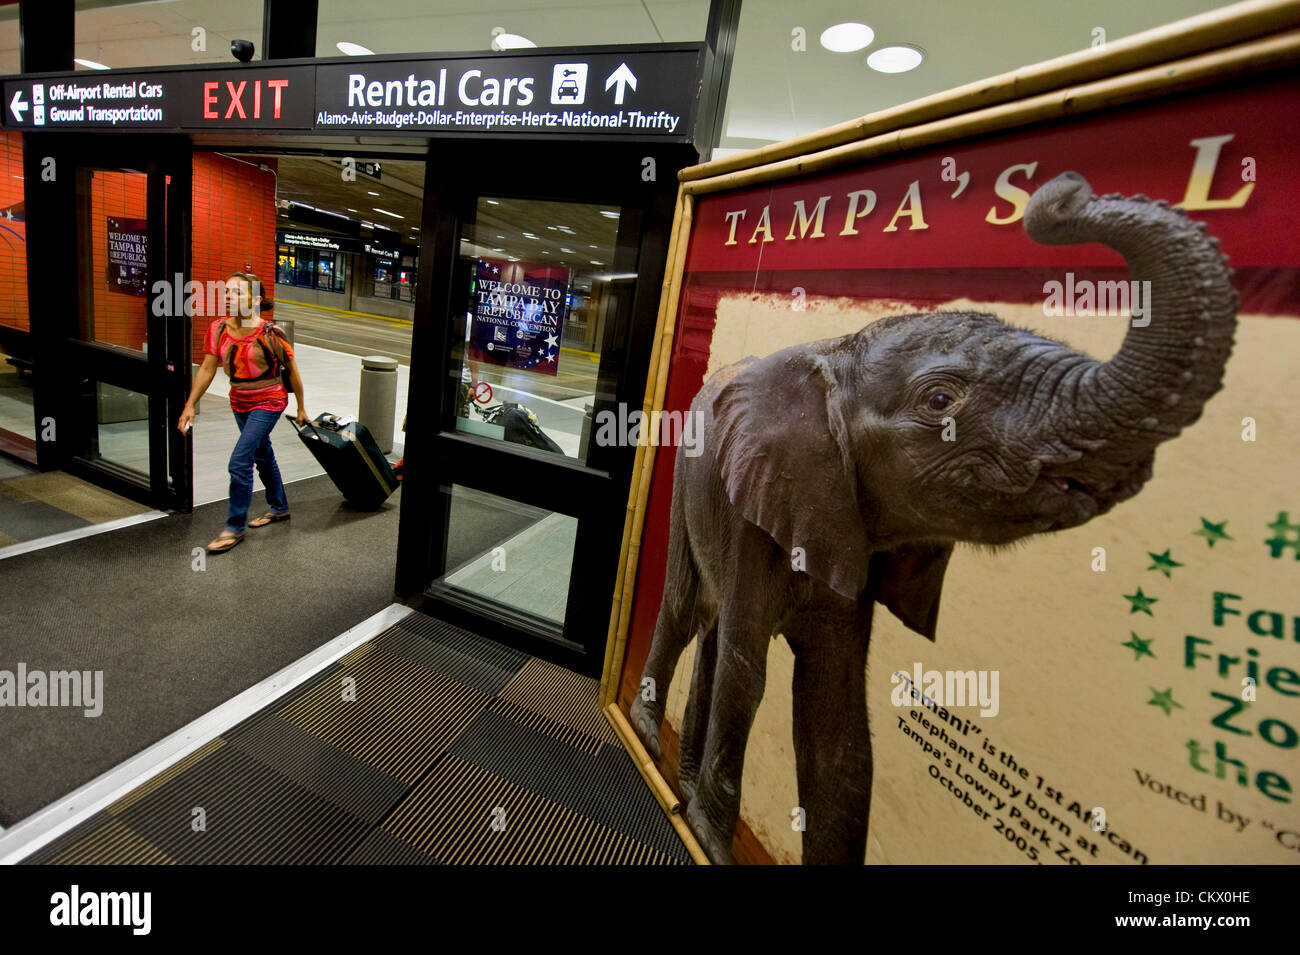 Tampa International Airport Tampa Fl Stock Photos & Tampa ...